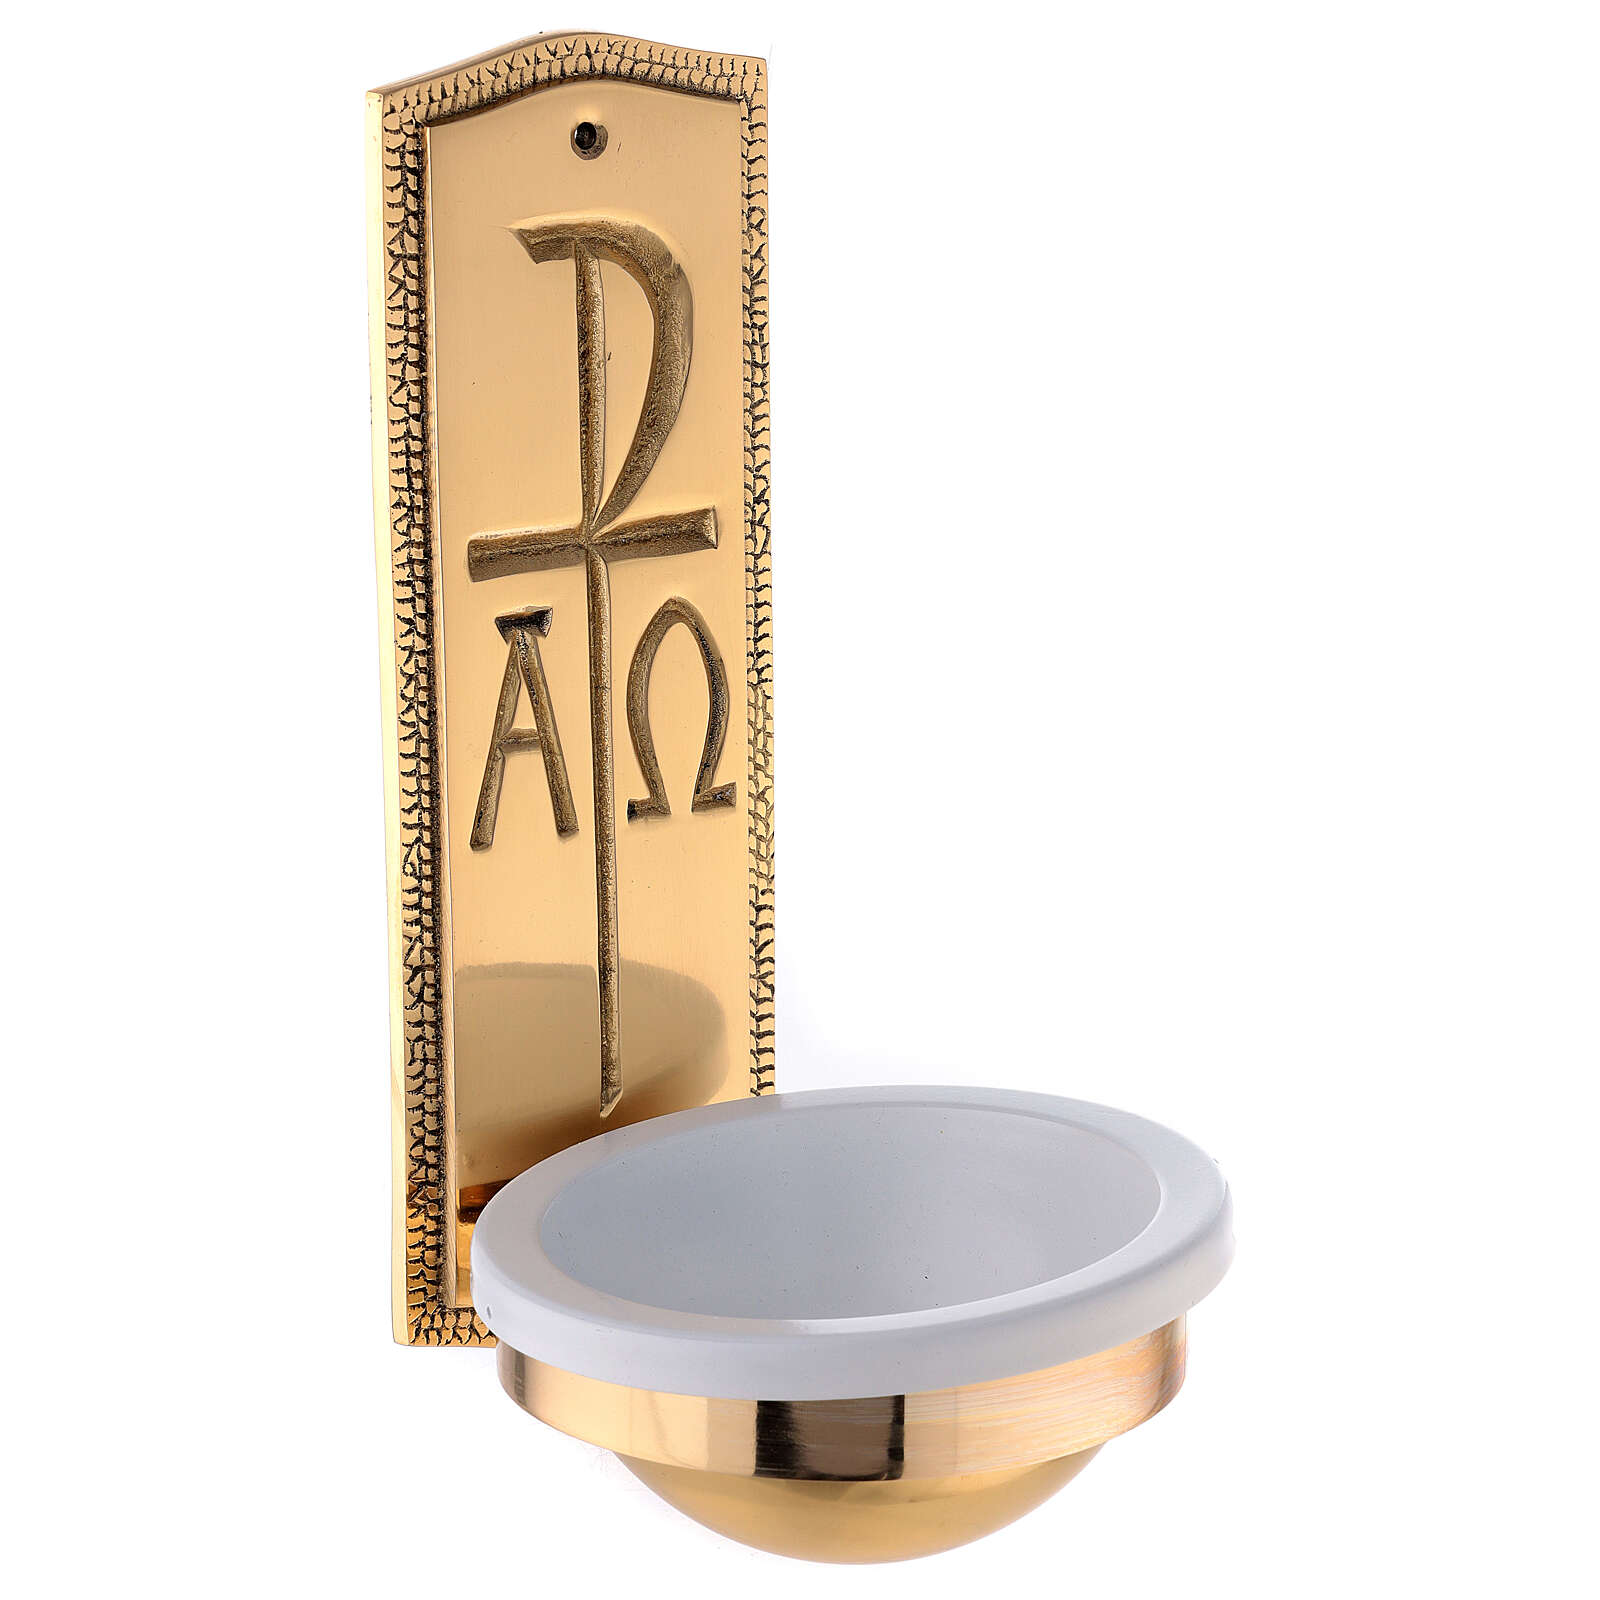 Gold plated brass Holy water font with Chi-Rho Alpha Omega 10 in 4